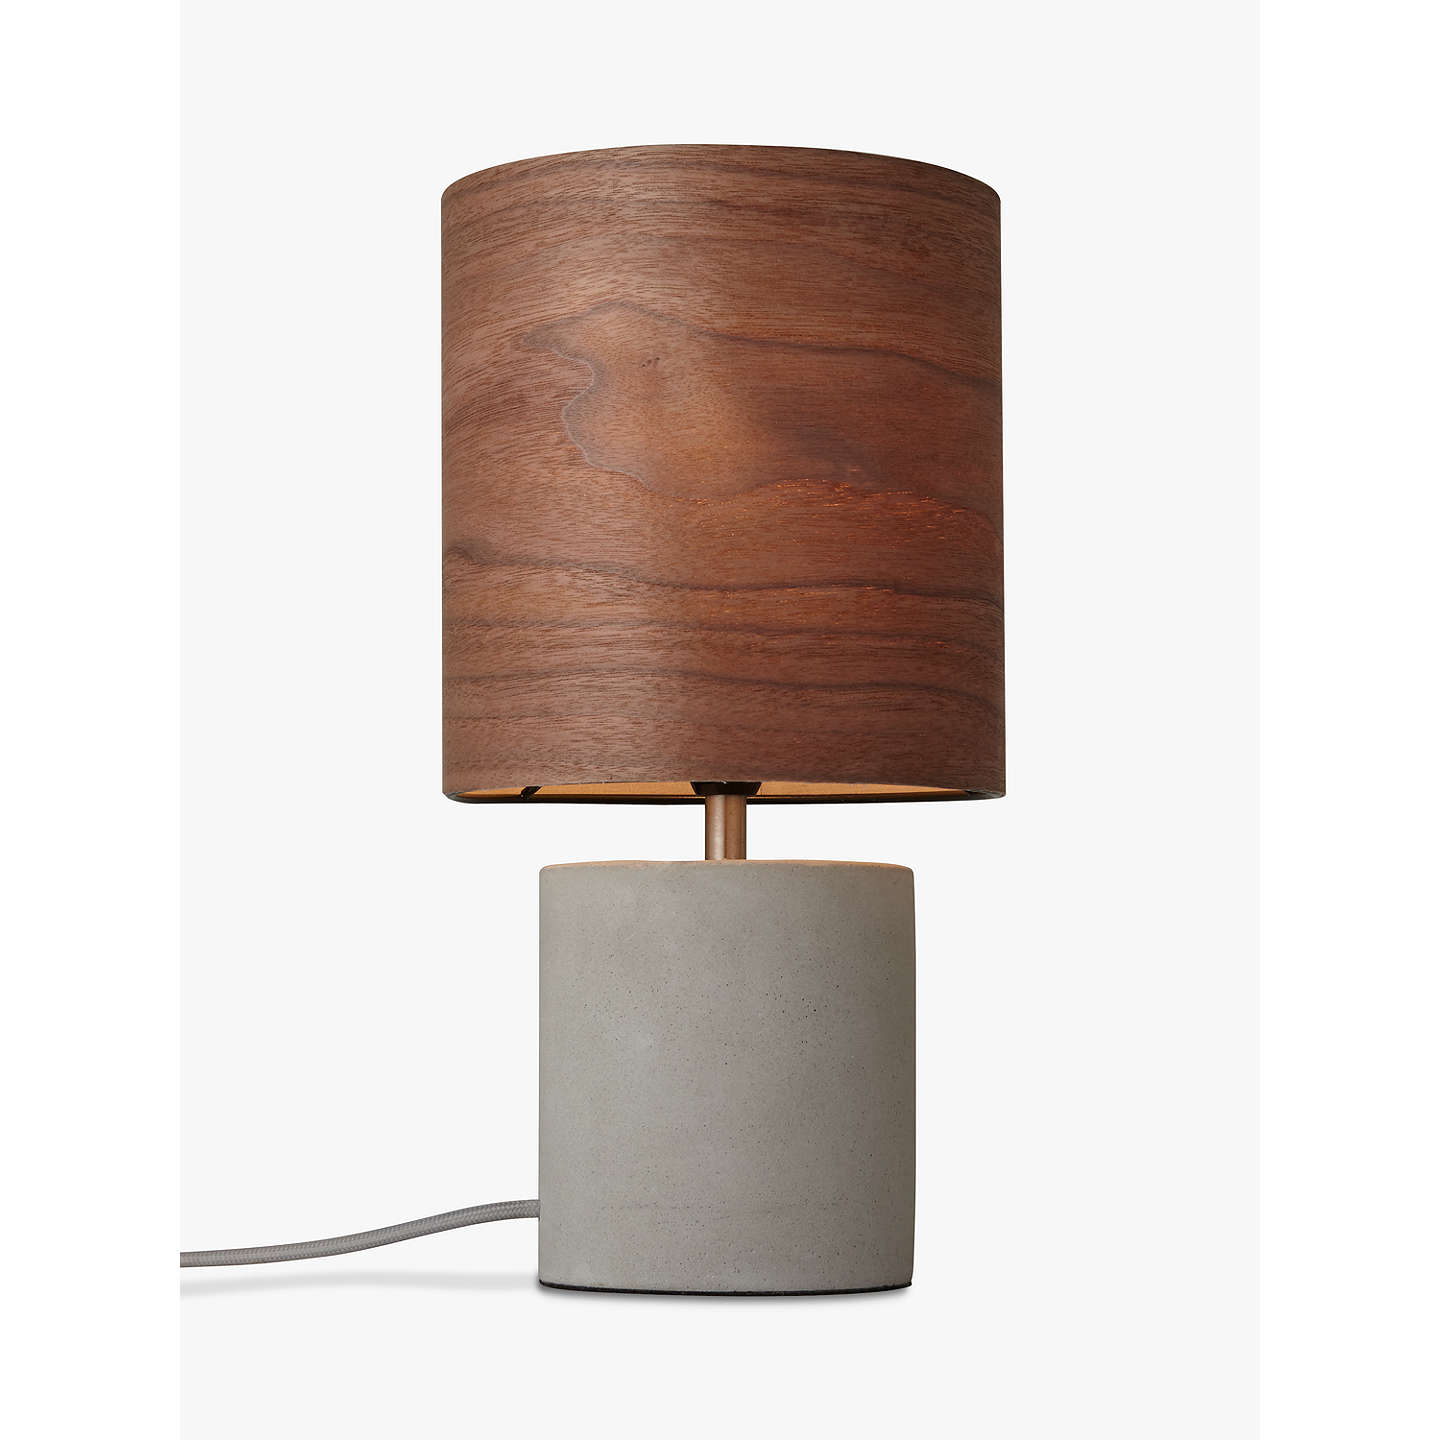 Design project by john lewis no047 table lamp walnut veneer at buydesign project by john lewis no047 table lamp walnut veneer online at johnlewis aloadofball Gallery